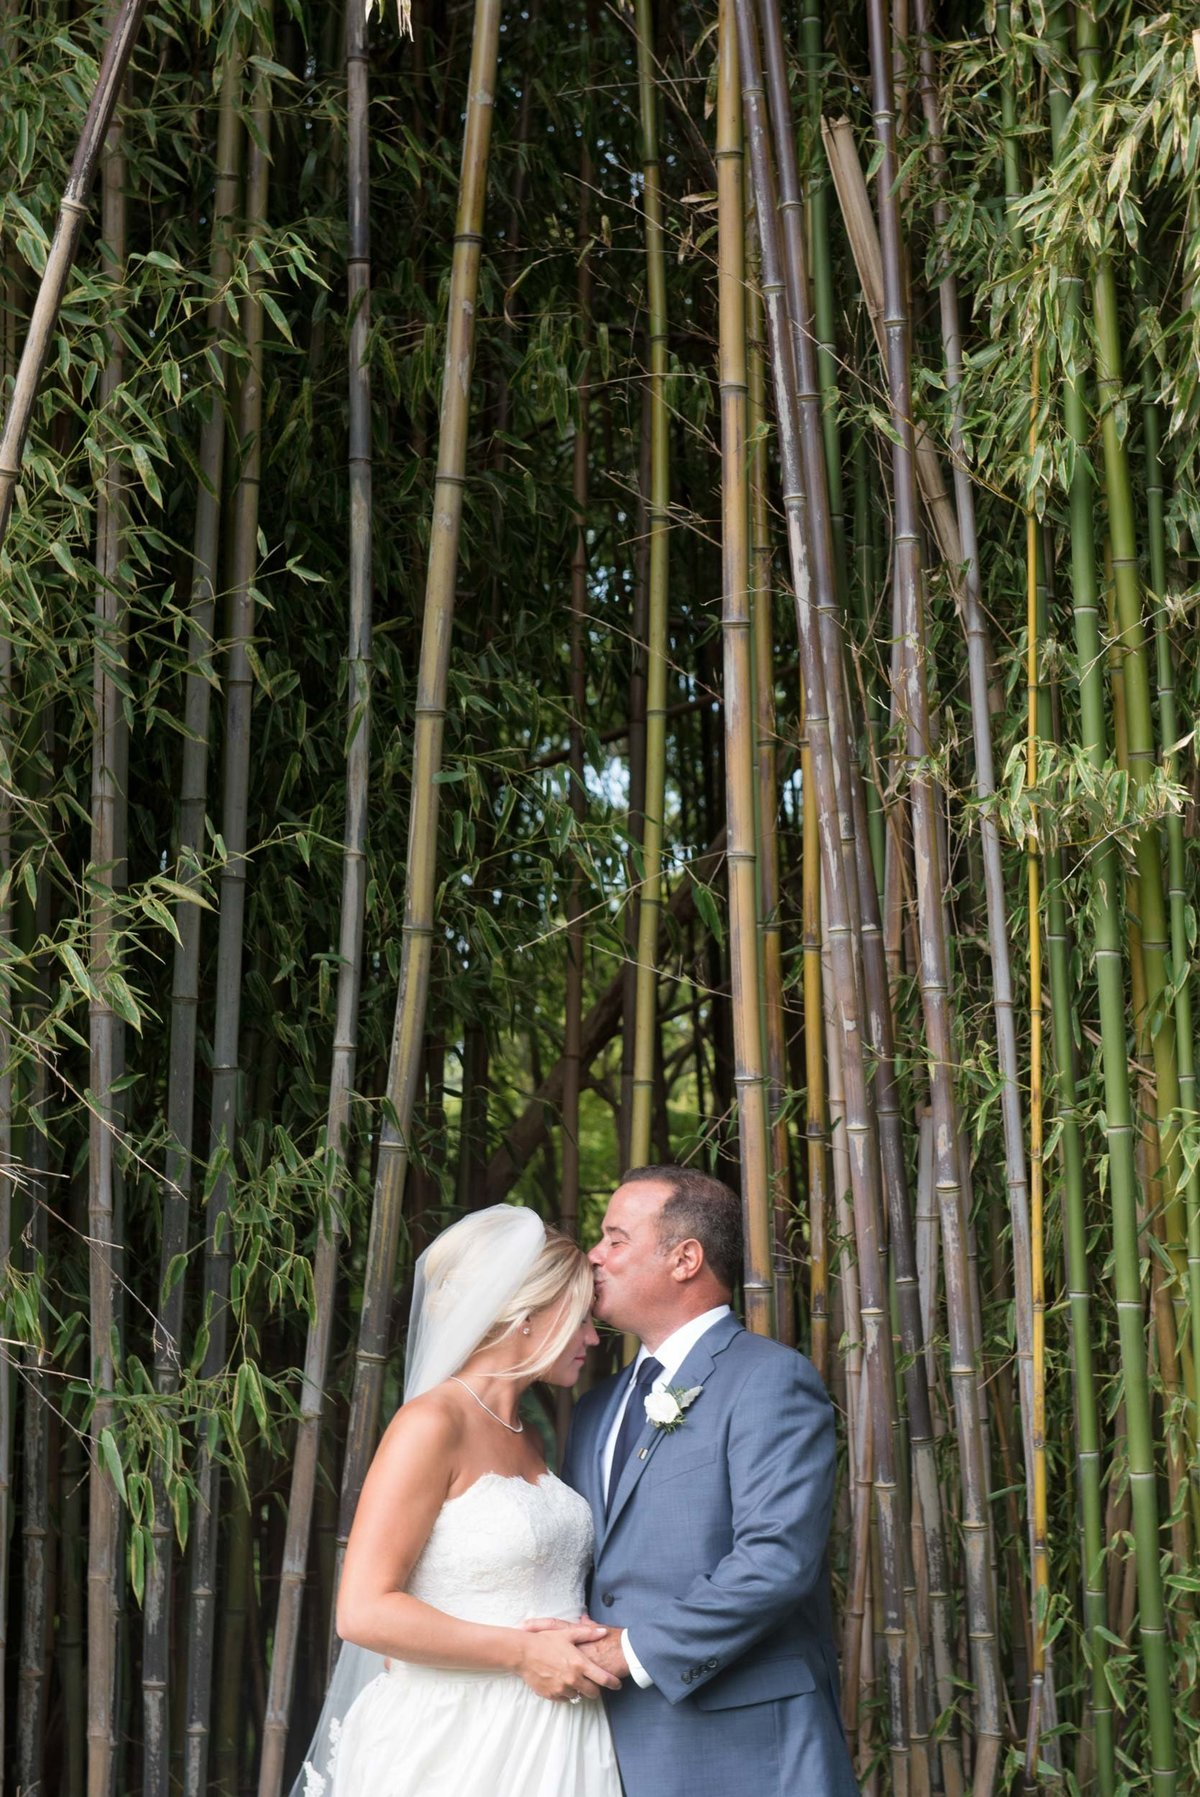 Groom kissing bride outside in front of trees at Huntington Crescent Club